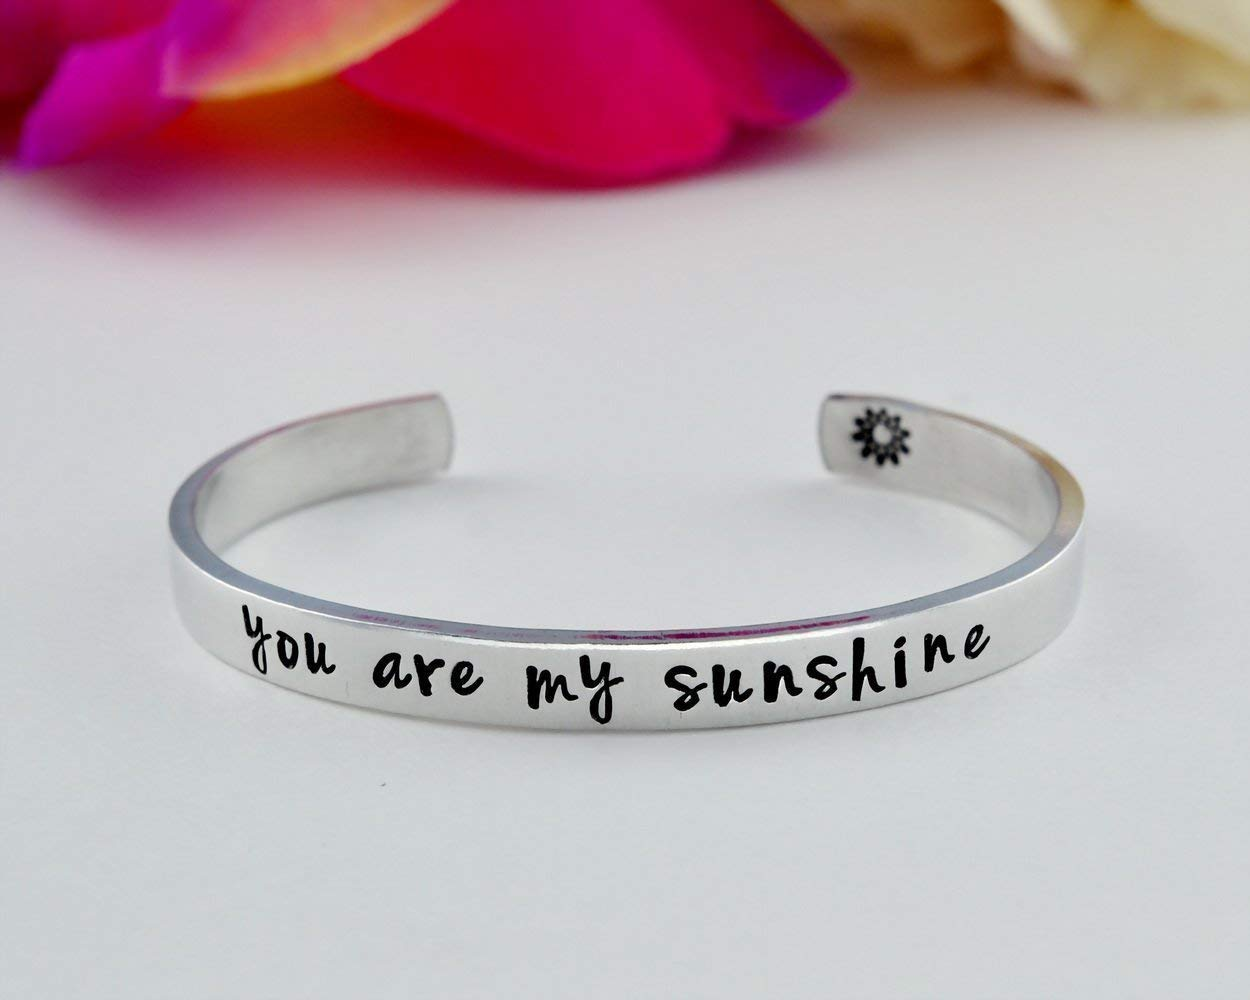 you are my sunshine - Hand Stamped Aluminum Cuff Bracelet, Mom Daughter Sisters Forever Family Love Mother's Day Gift, Best Friends BFF Personalized Gift